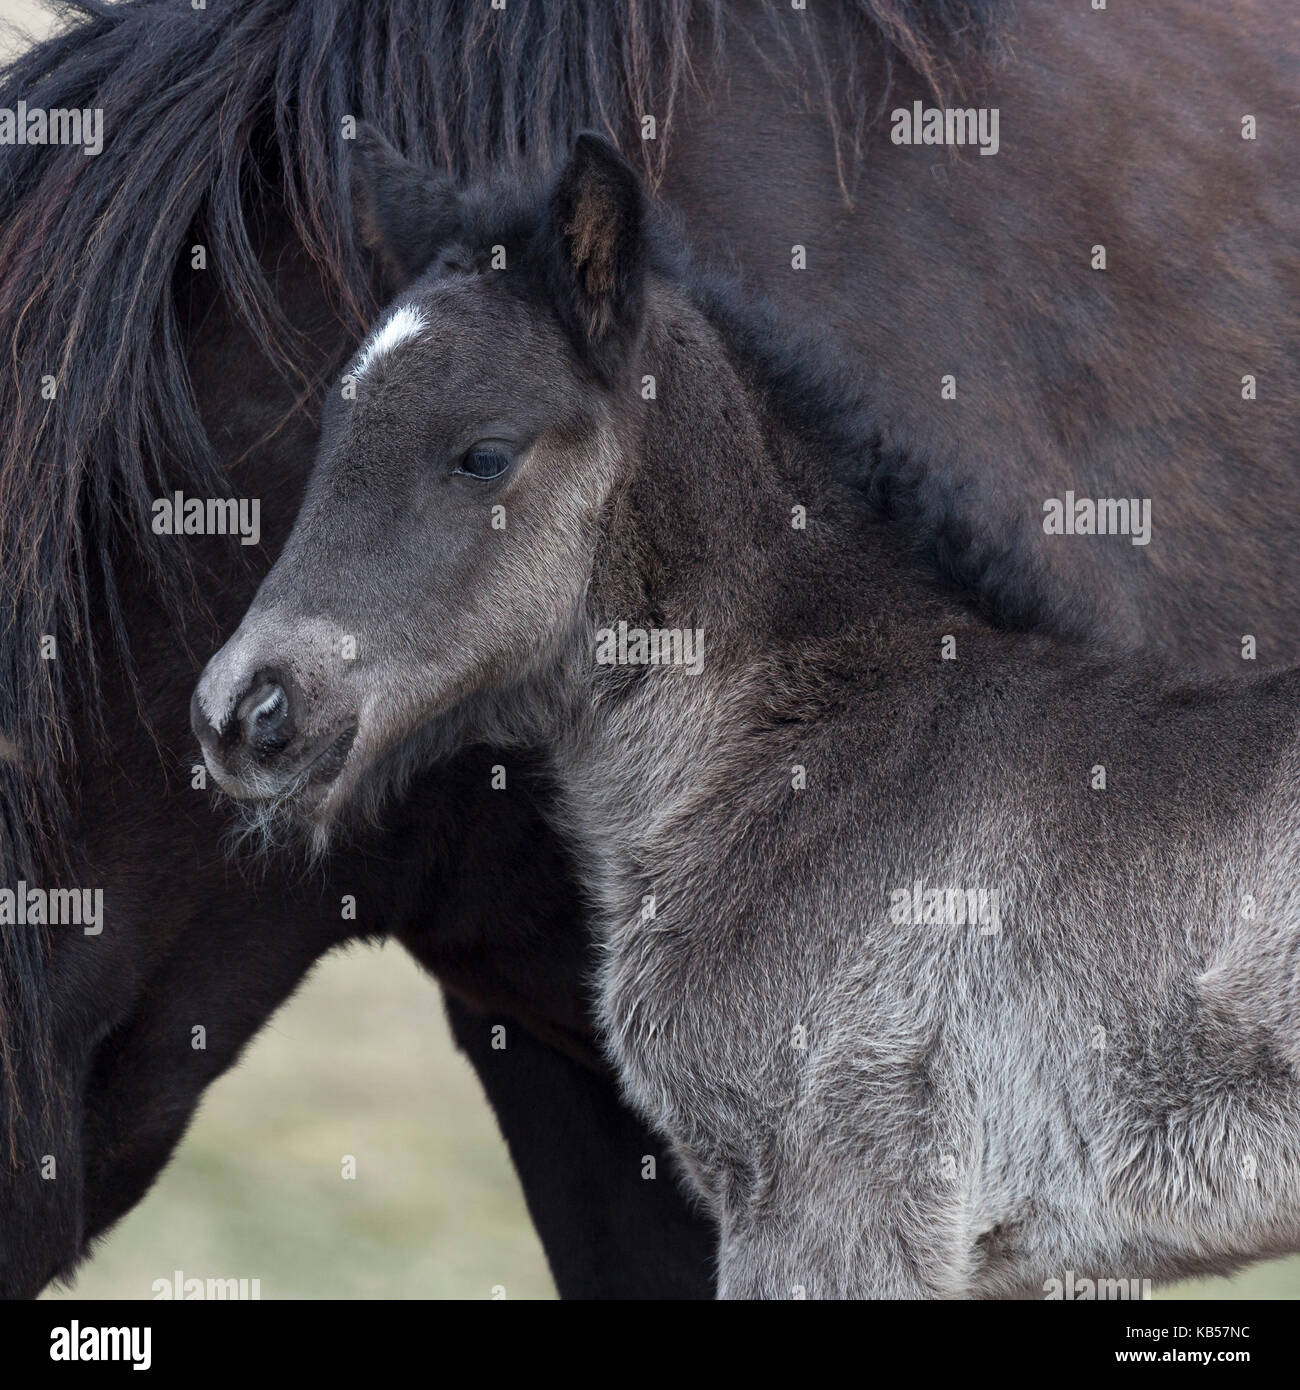 Newborn foal with horse, Iceland Icelandic pure-bred horses, Iceland Stock Photo